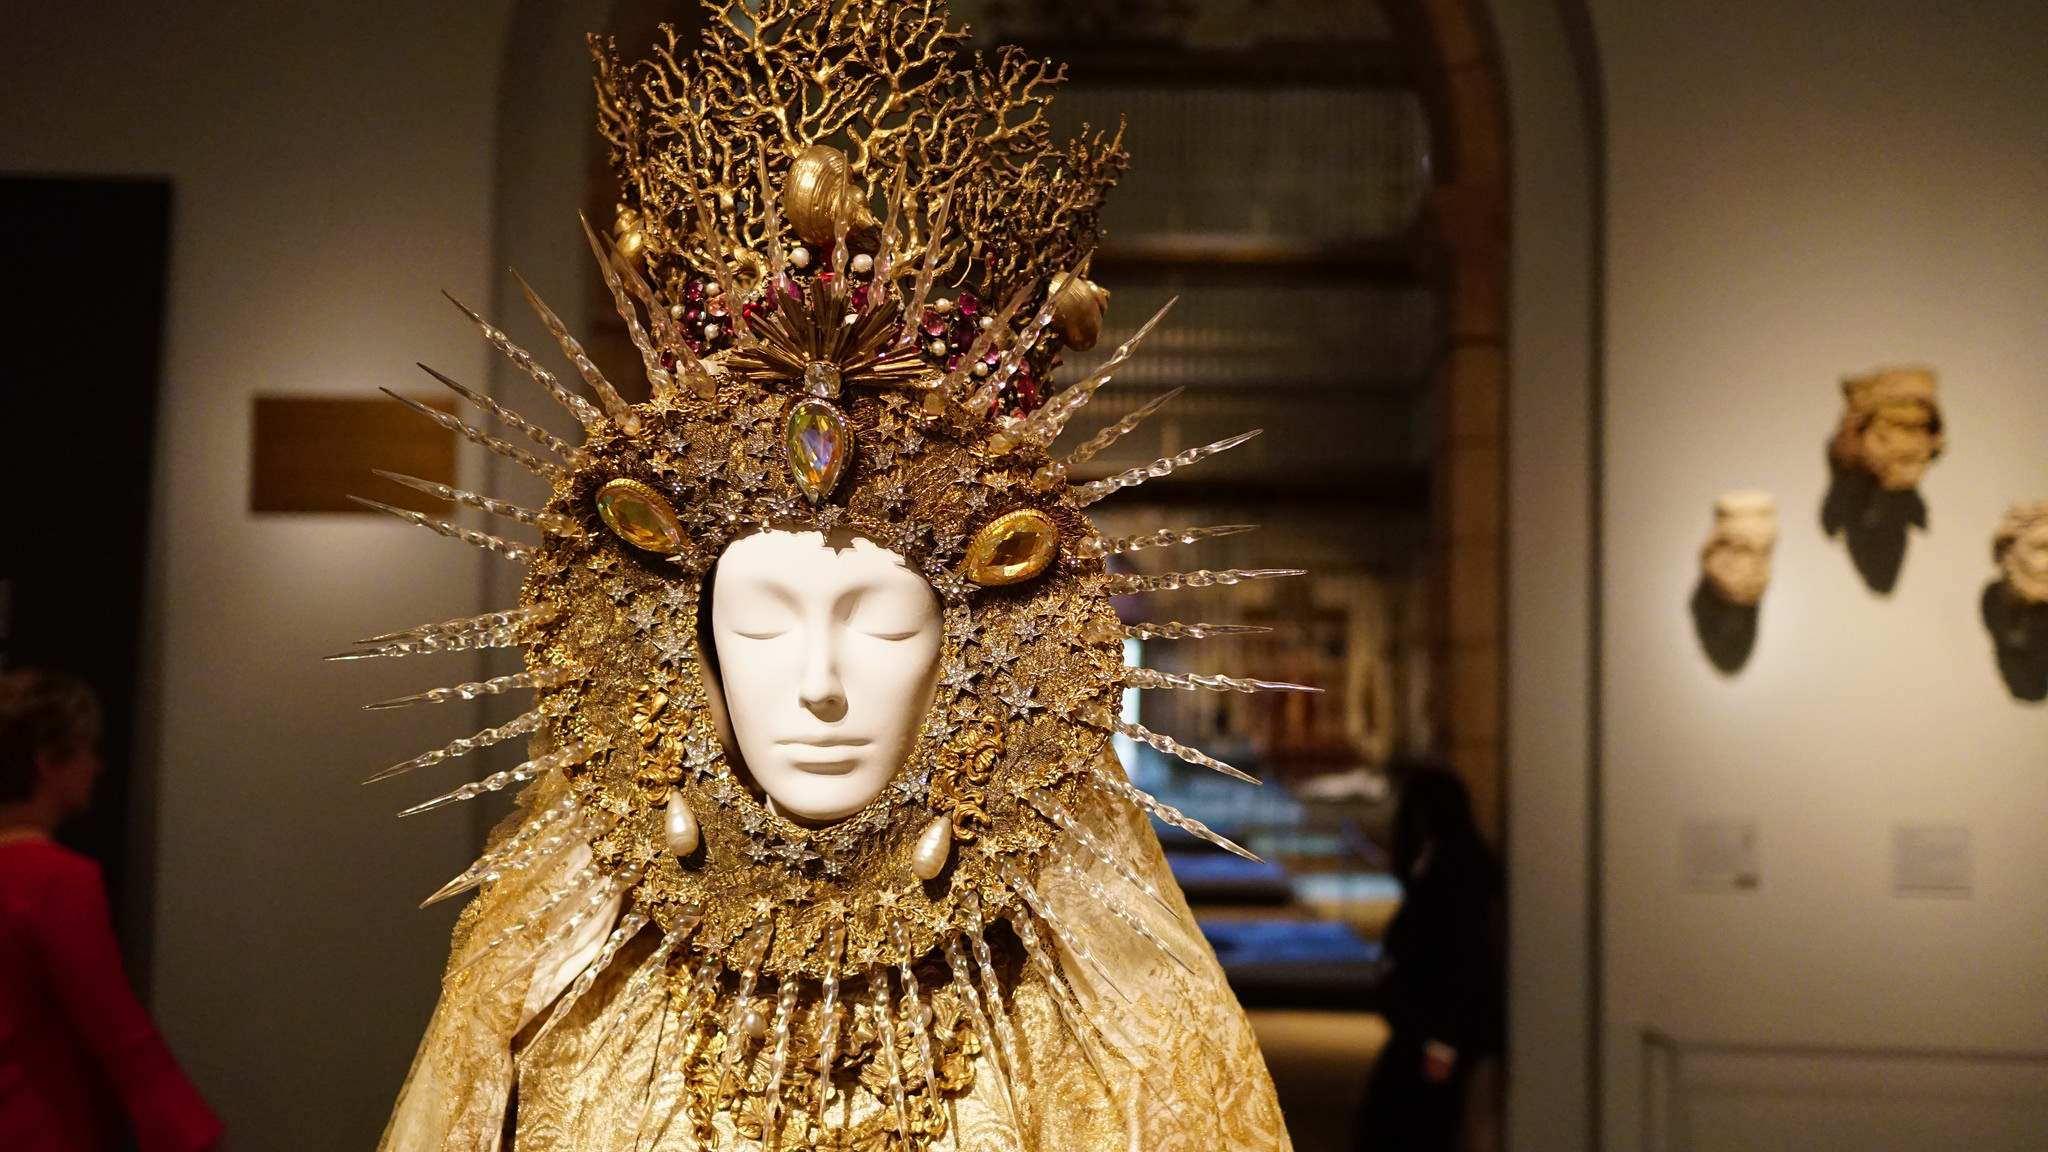 heavenly bodies11 Heavenly Bodies: Fashion and the Catholic Imagination in MET